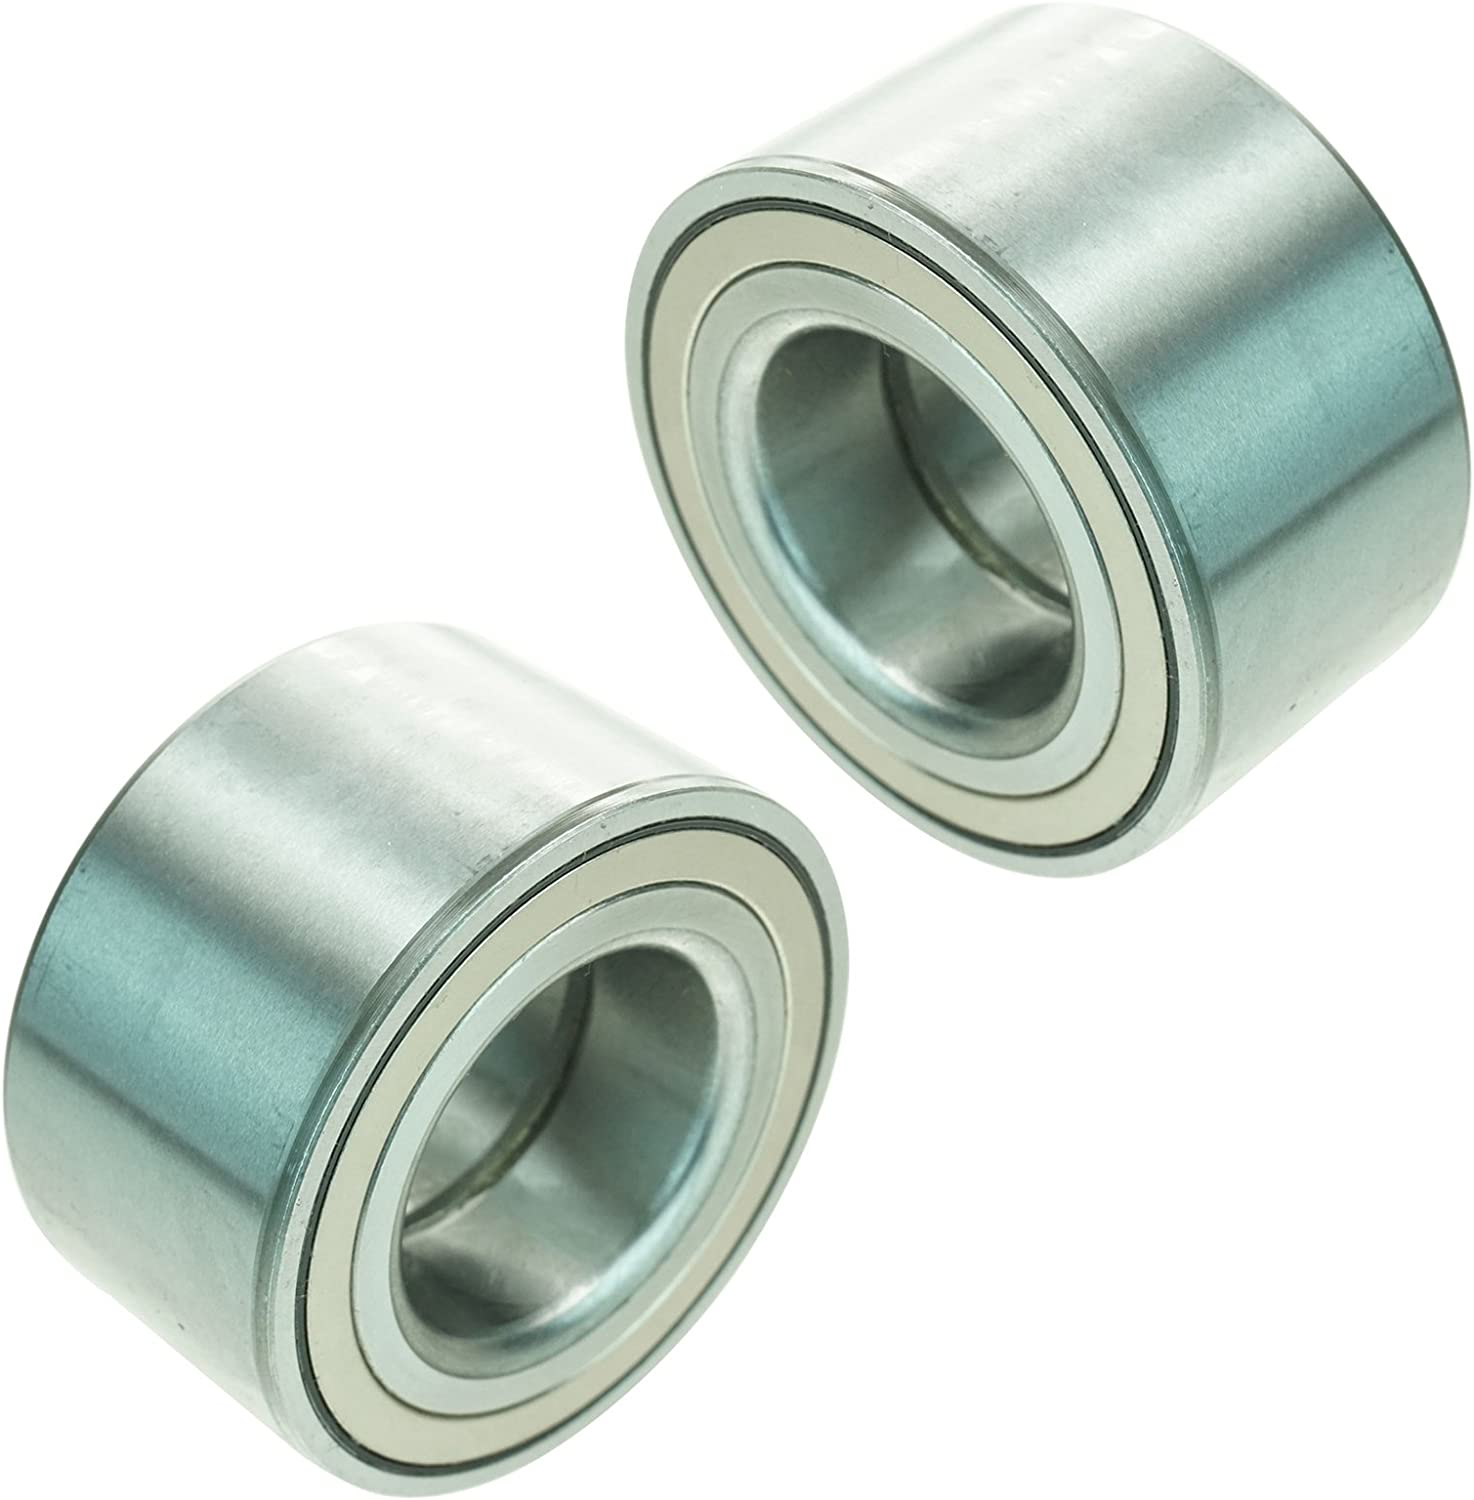 Toyota Pontiac Lincoln Lexus QJZ 2-Pack//Pair Non-ABS 510063 Front Wheel Bearing for Ford Mazda